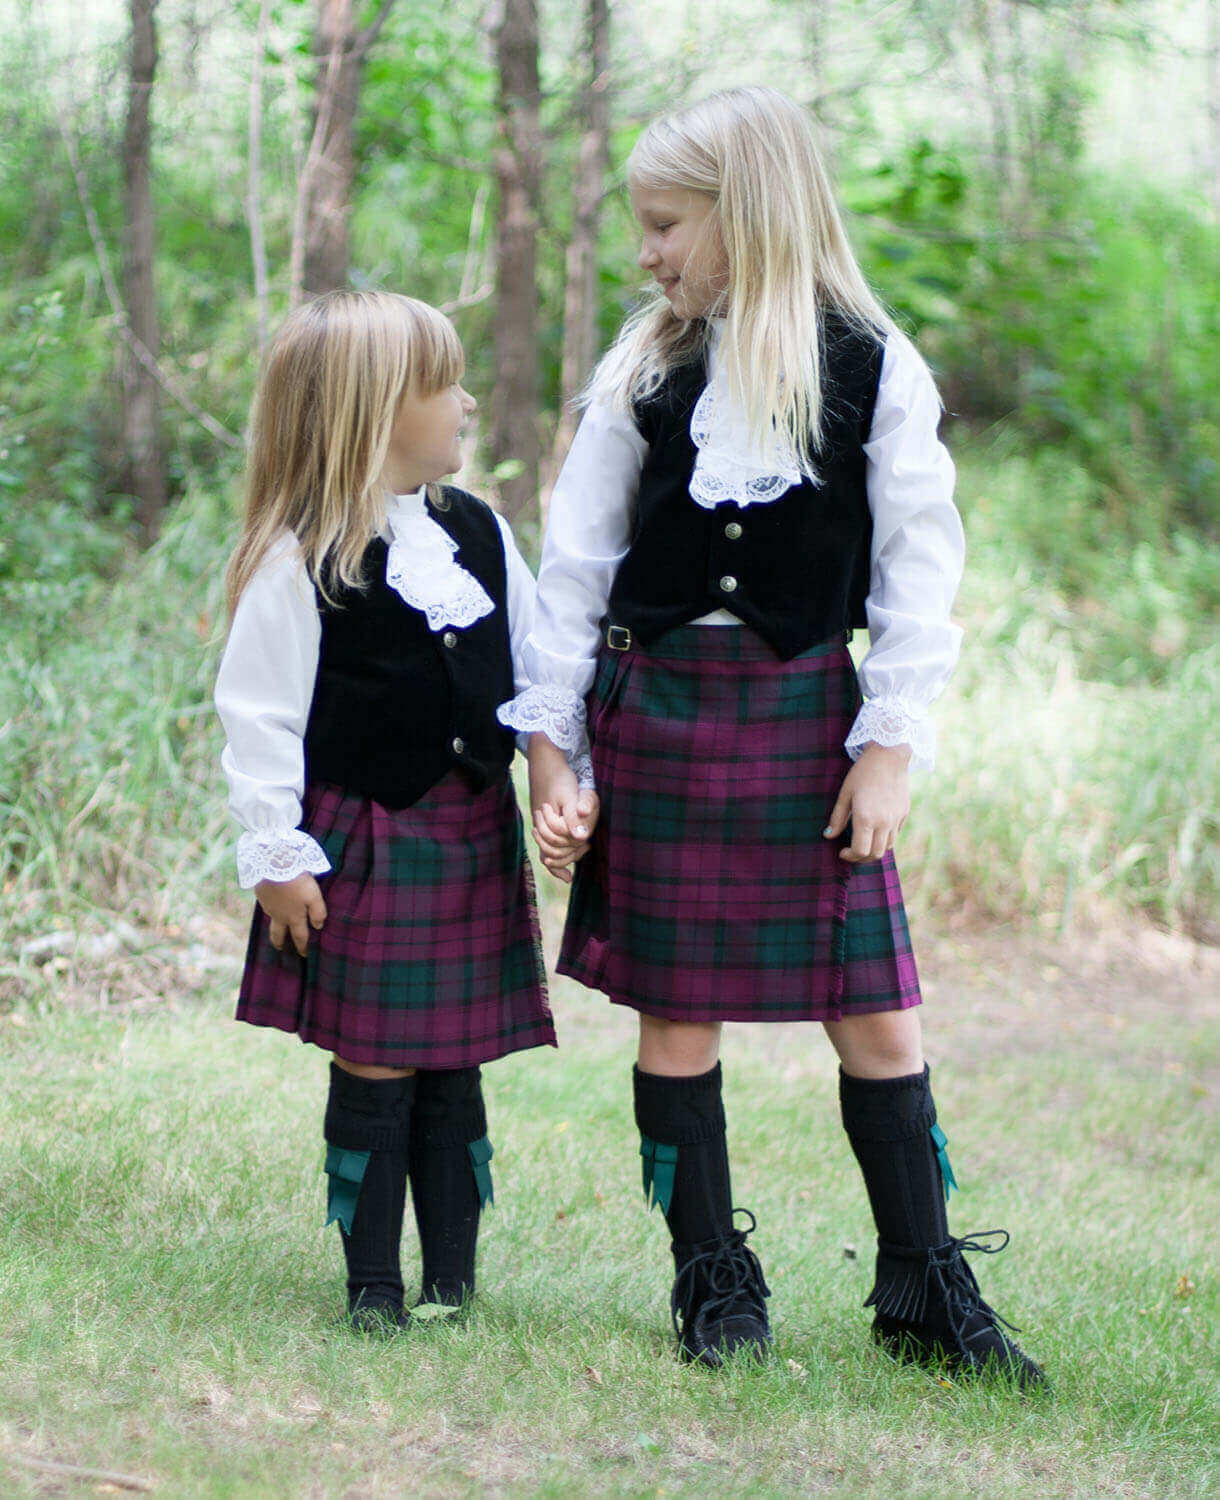 Two little girls wearing kilts they received as Christmas gifts